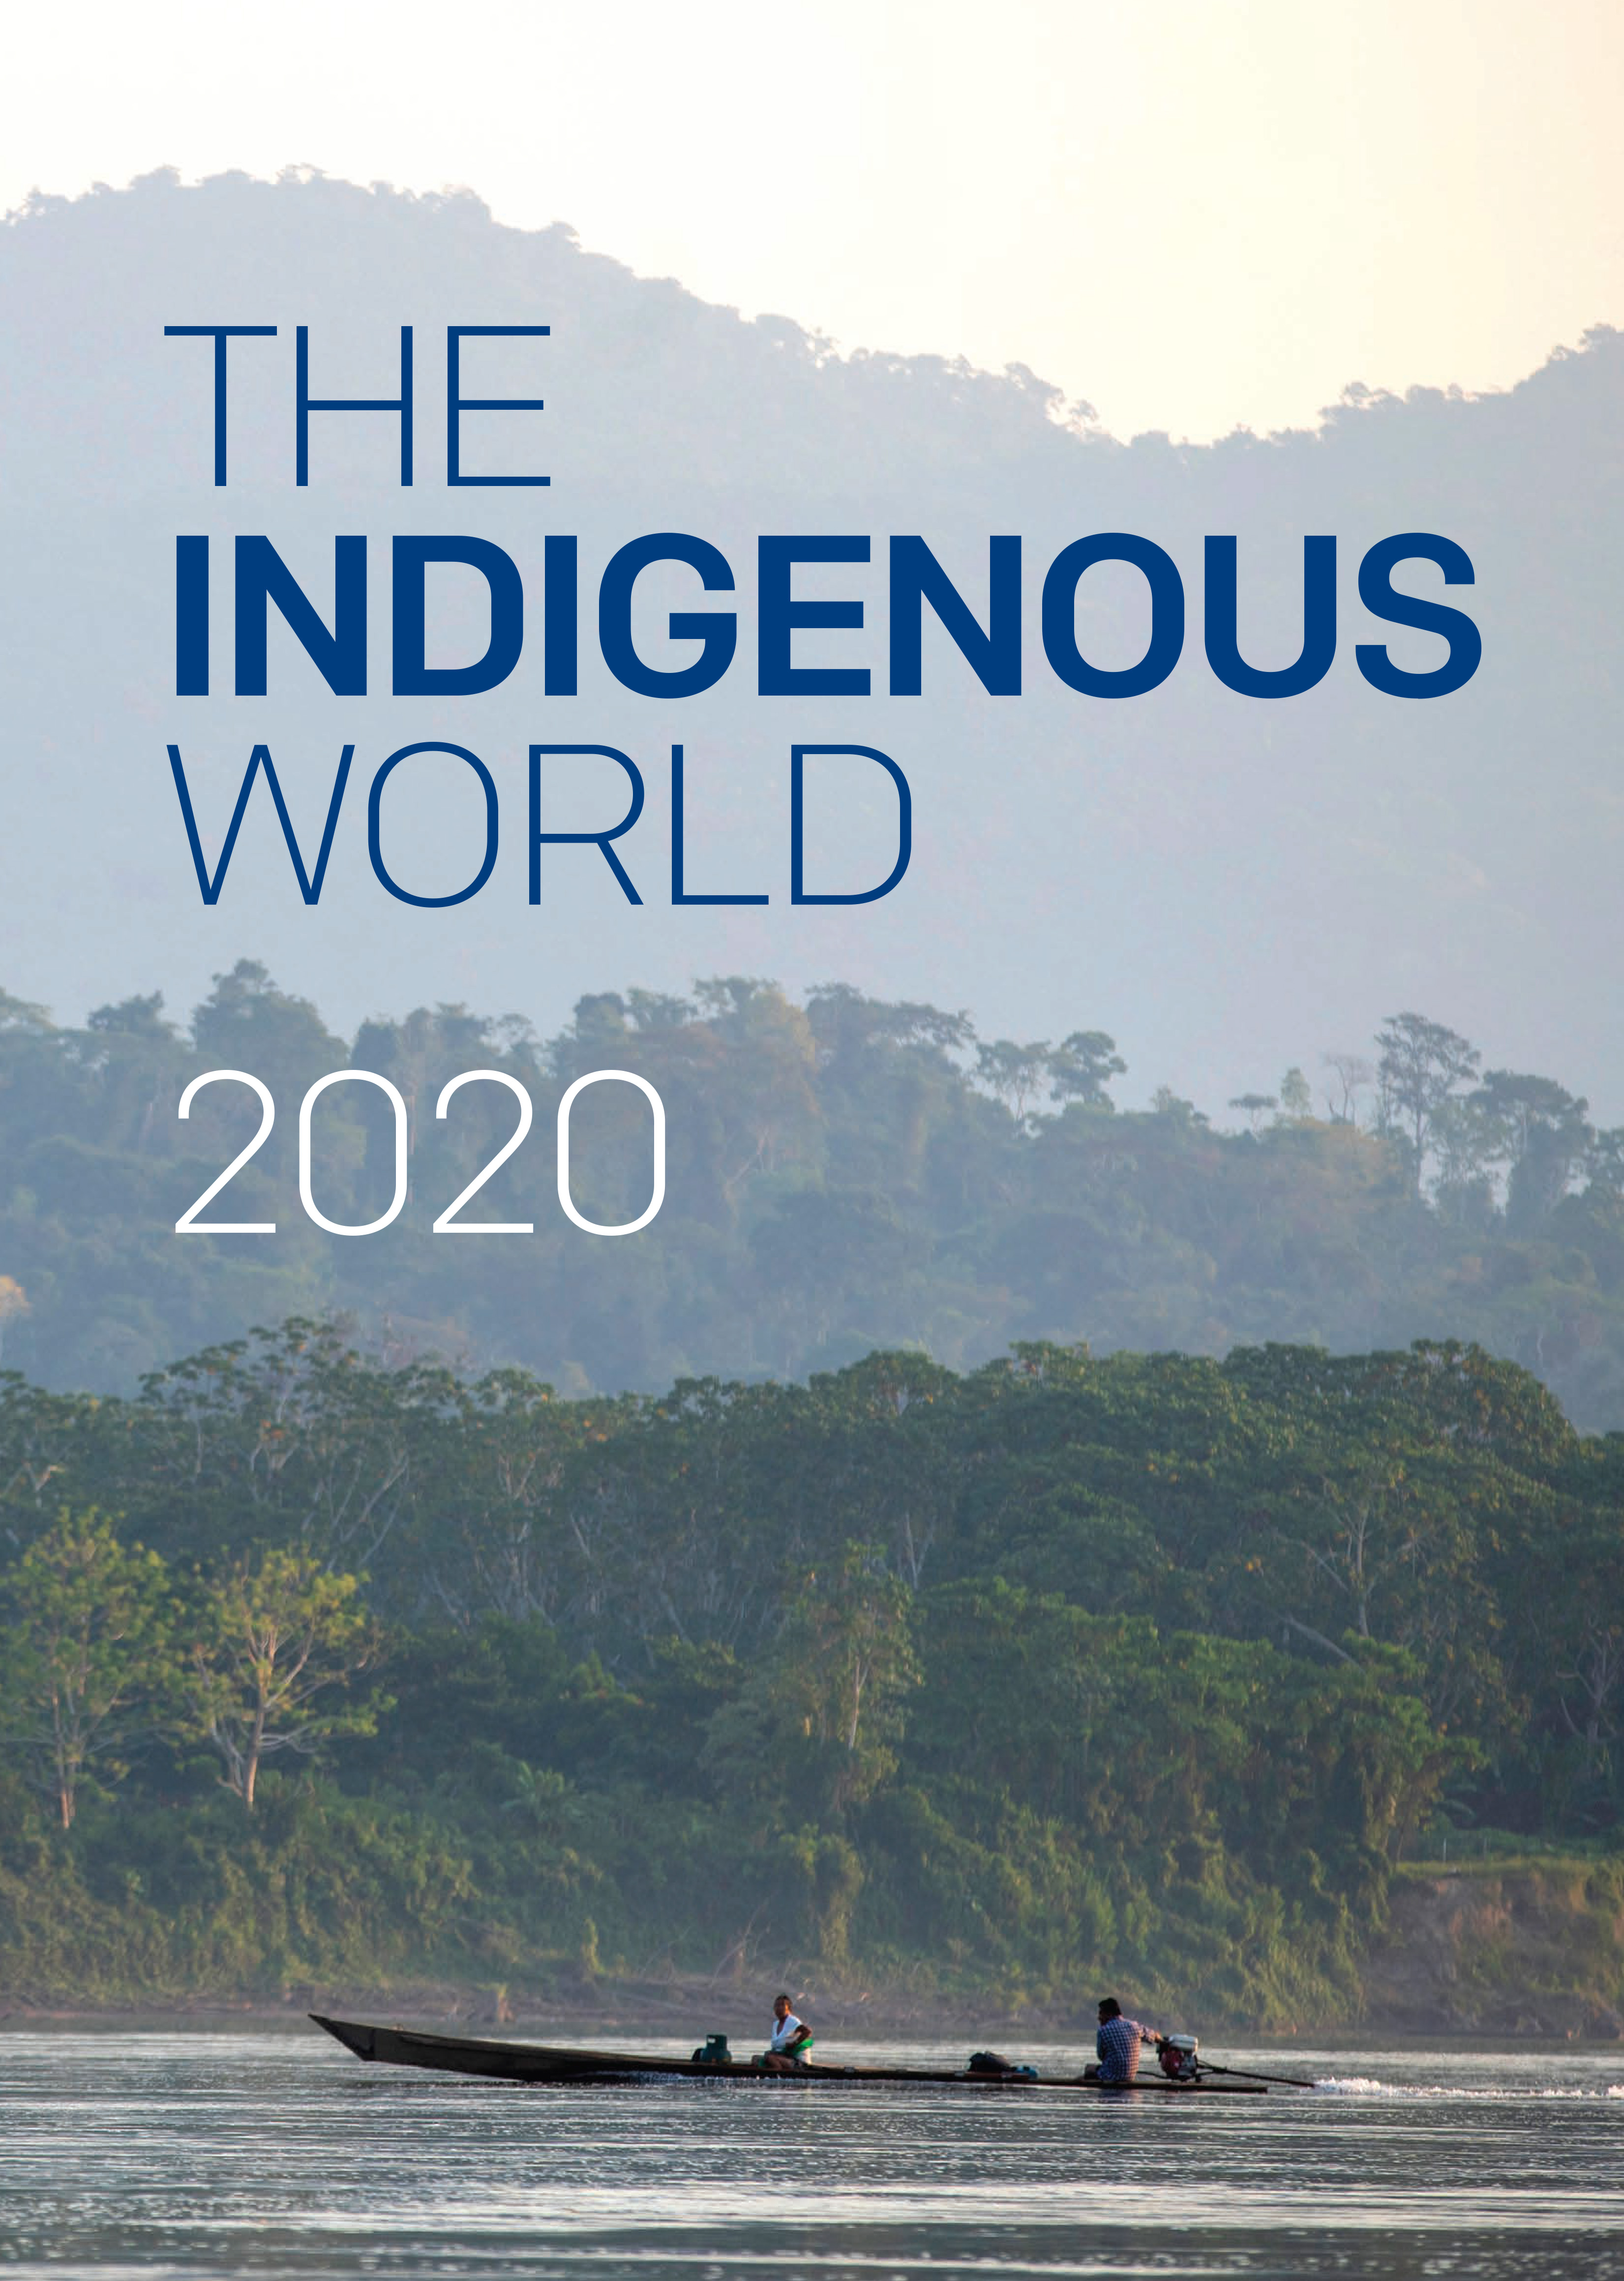 The Indigenous World 2020